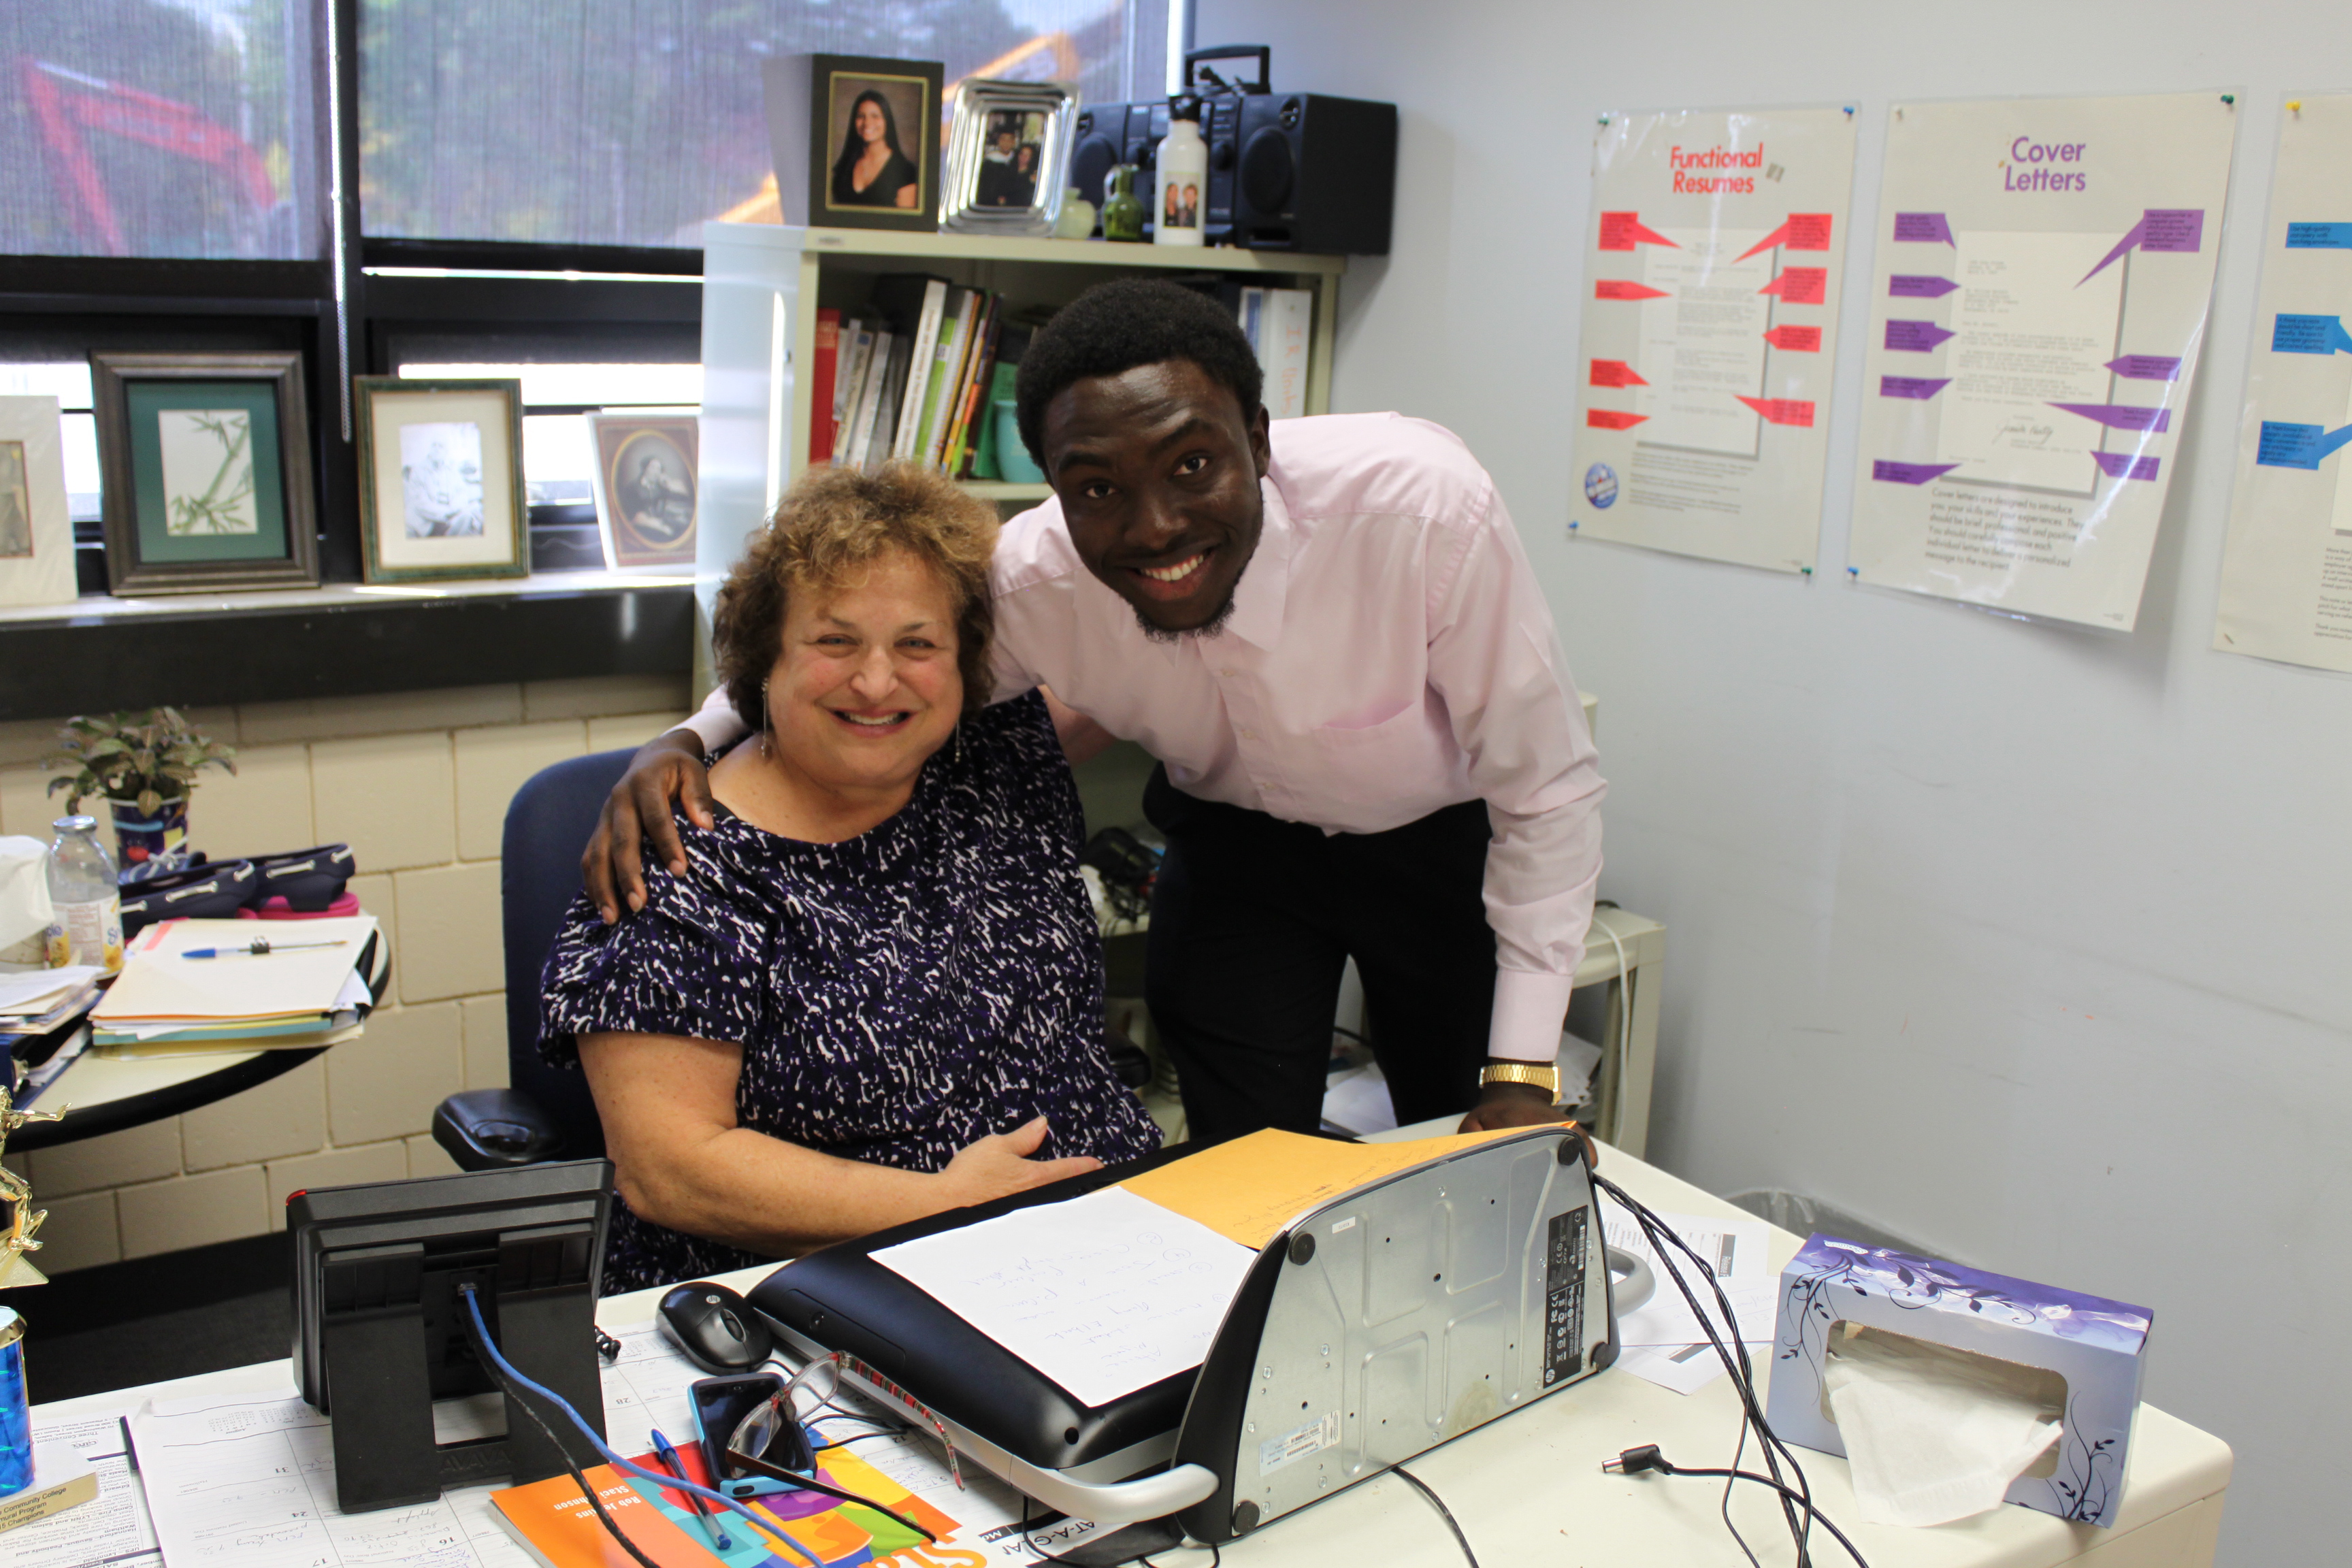 Ina Resnikoff, academic counsellor and learning specialist at North Shore Community College, with her student Osarumwense Agbonsalo, an immigrant from Nigeria